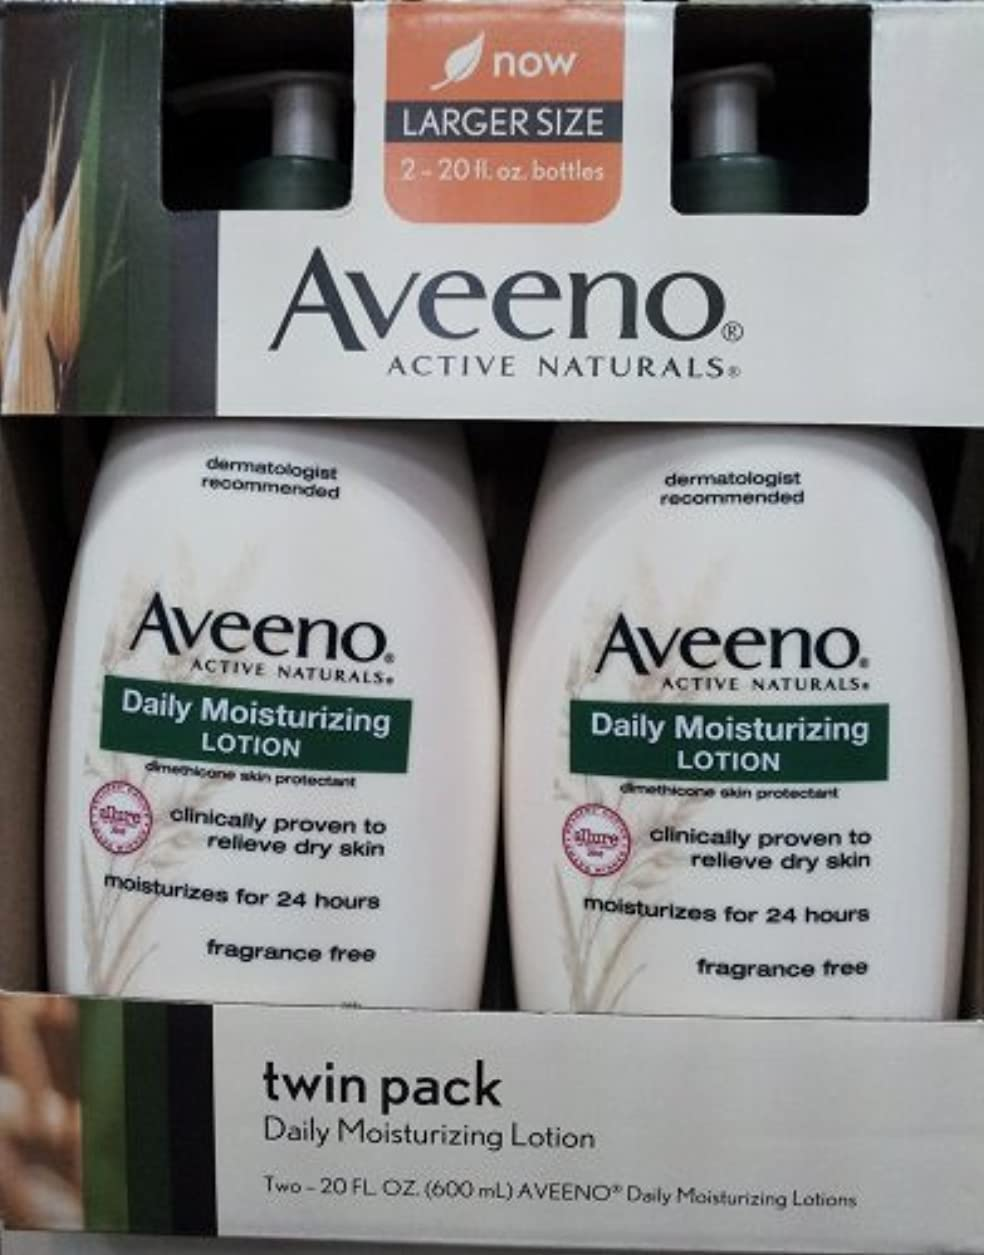 愛するトラック解き明かすAveeno Active Naturals Daily Moisturizing Lotion, NEW 2 pack of 20 FL oz Pump [並行輸入品]